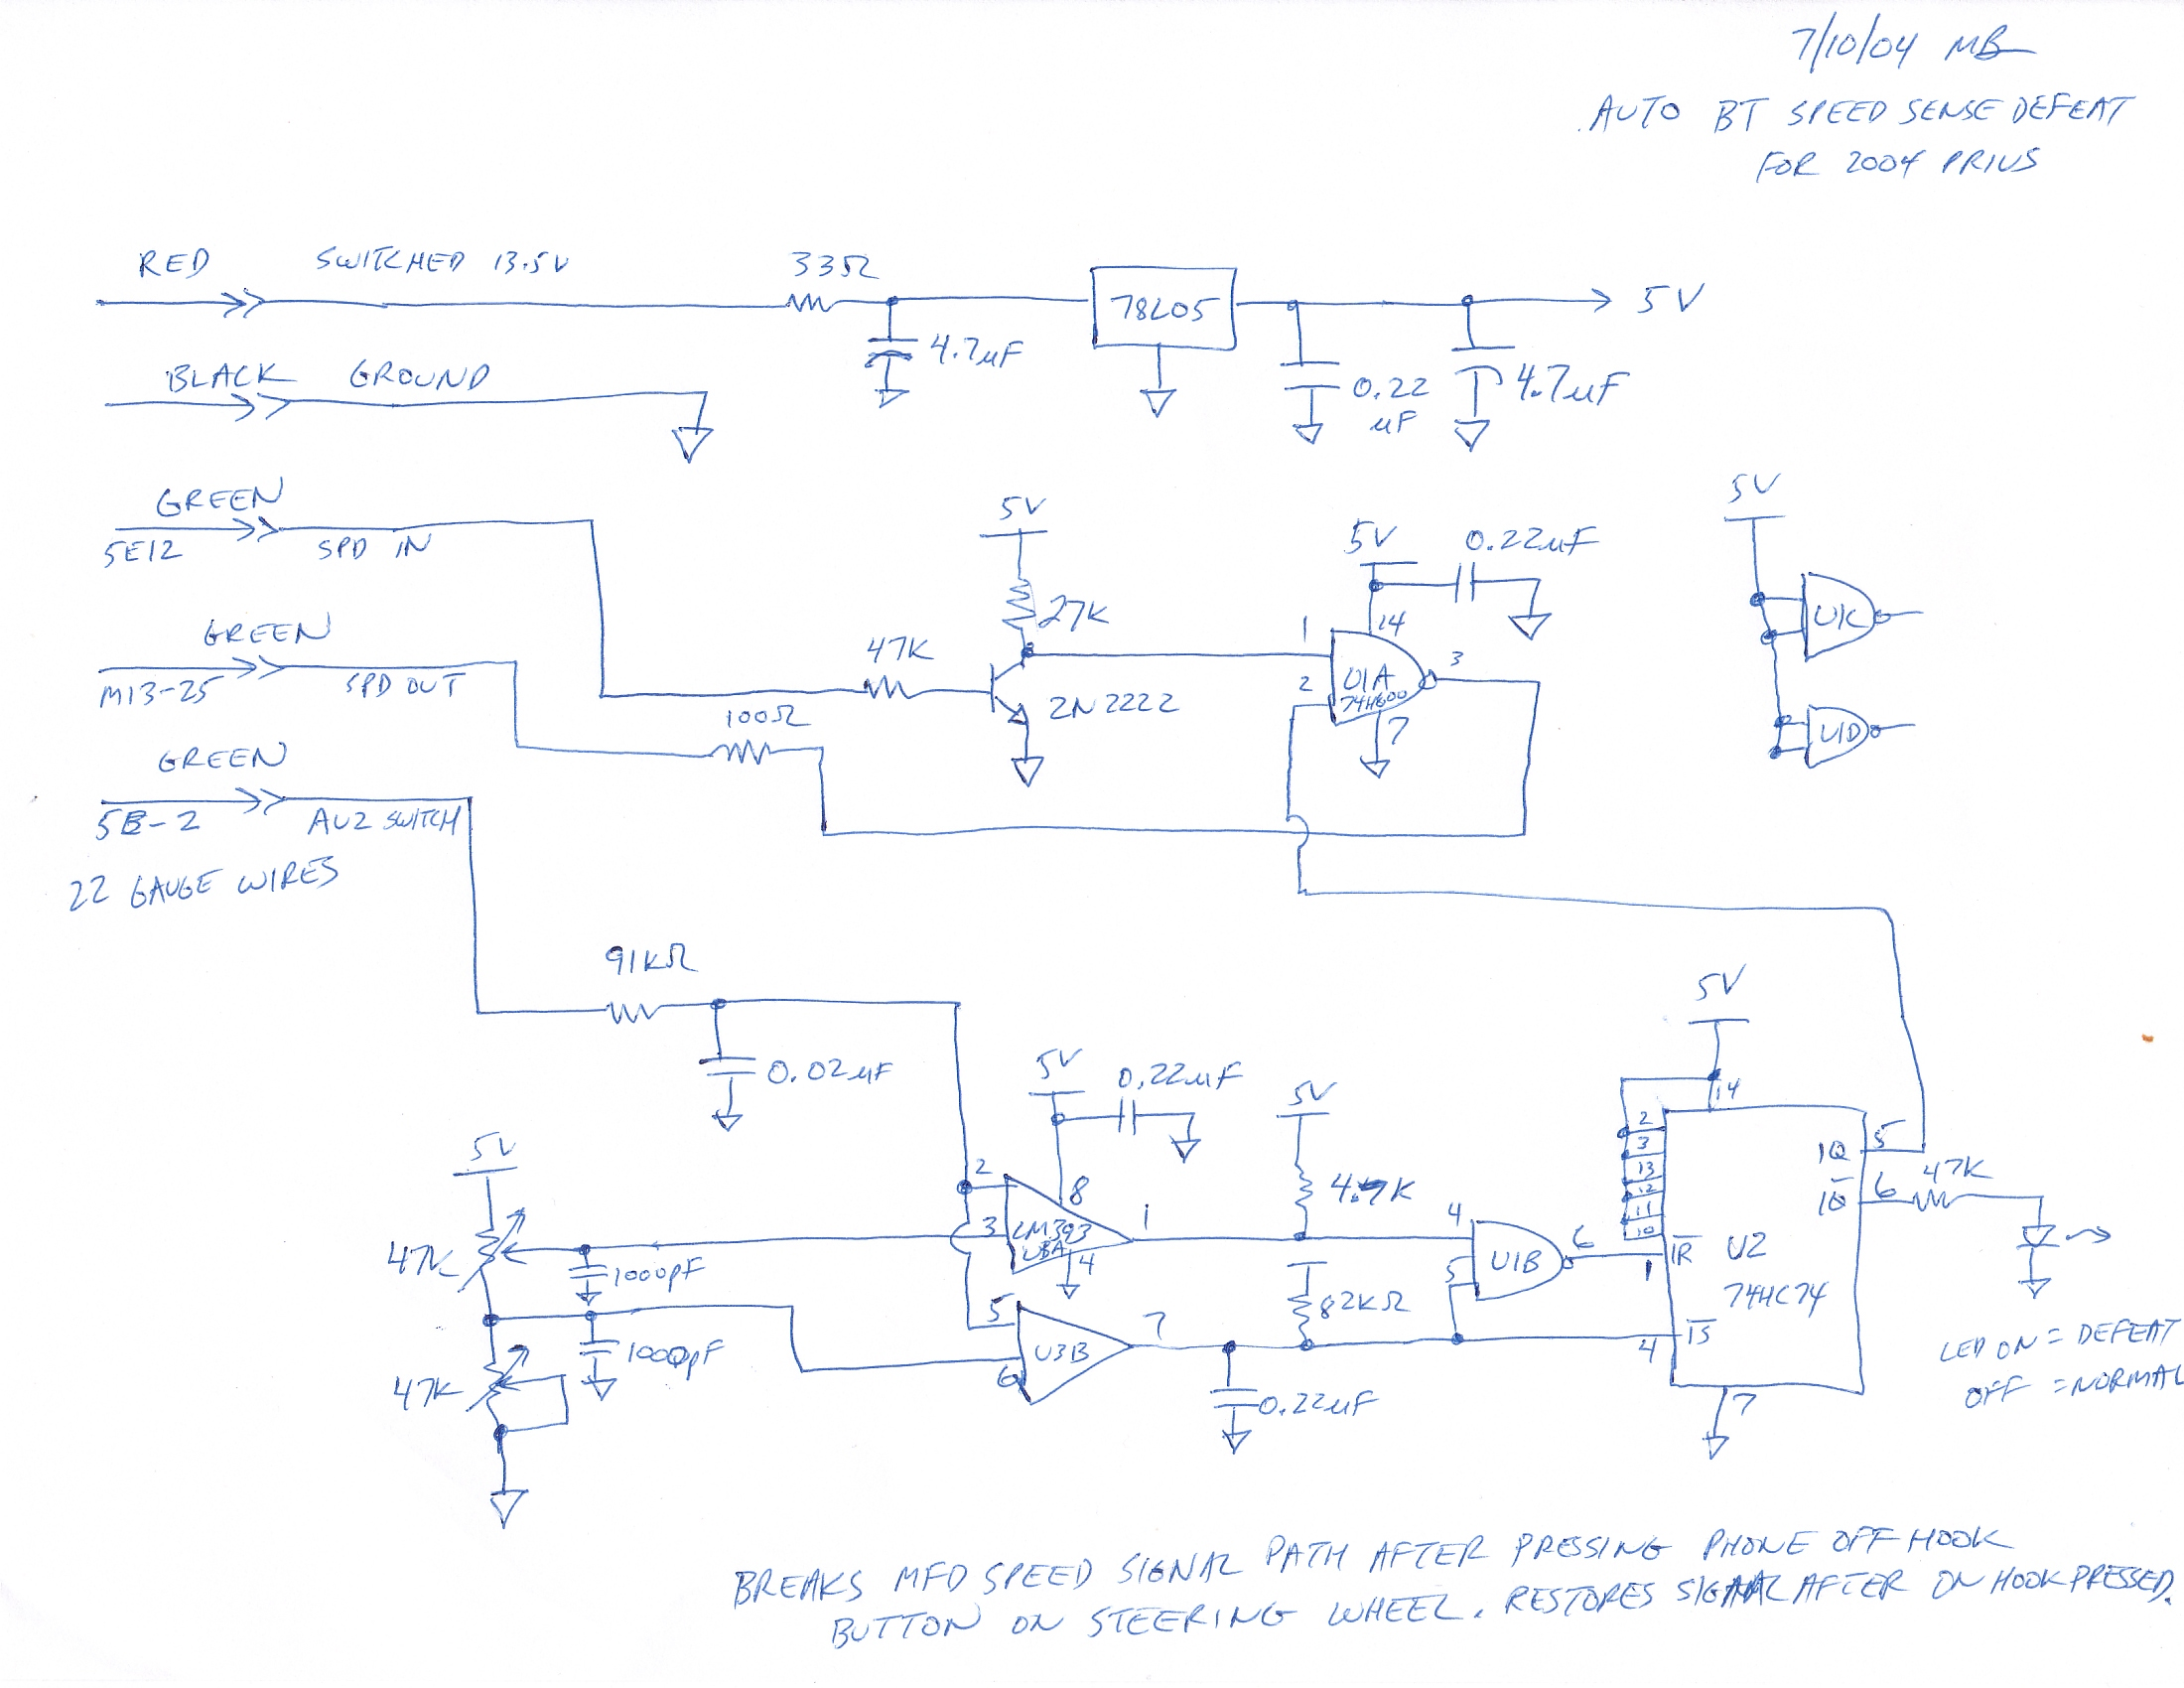 bt_only_schematic index of prius bt versatility wiring diagram at gsmx.co